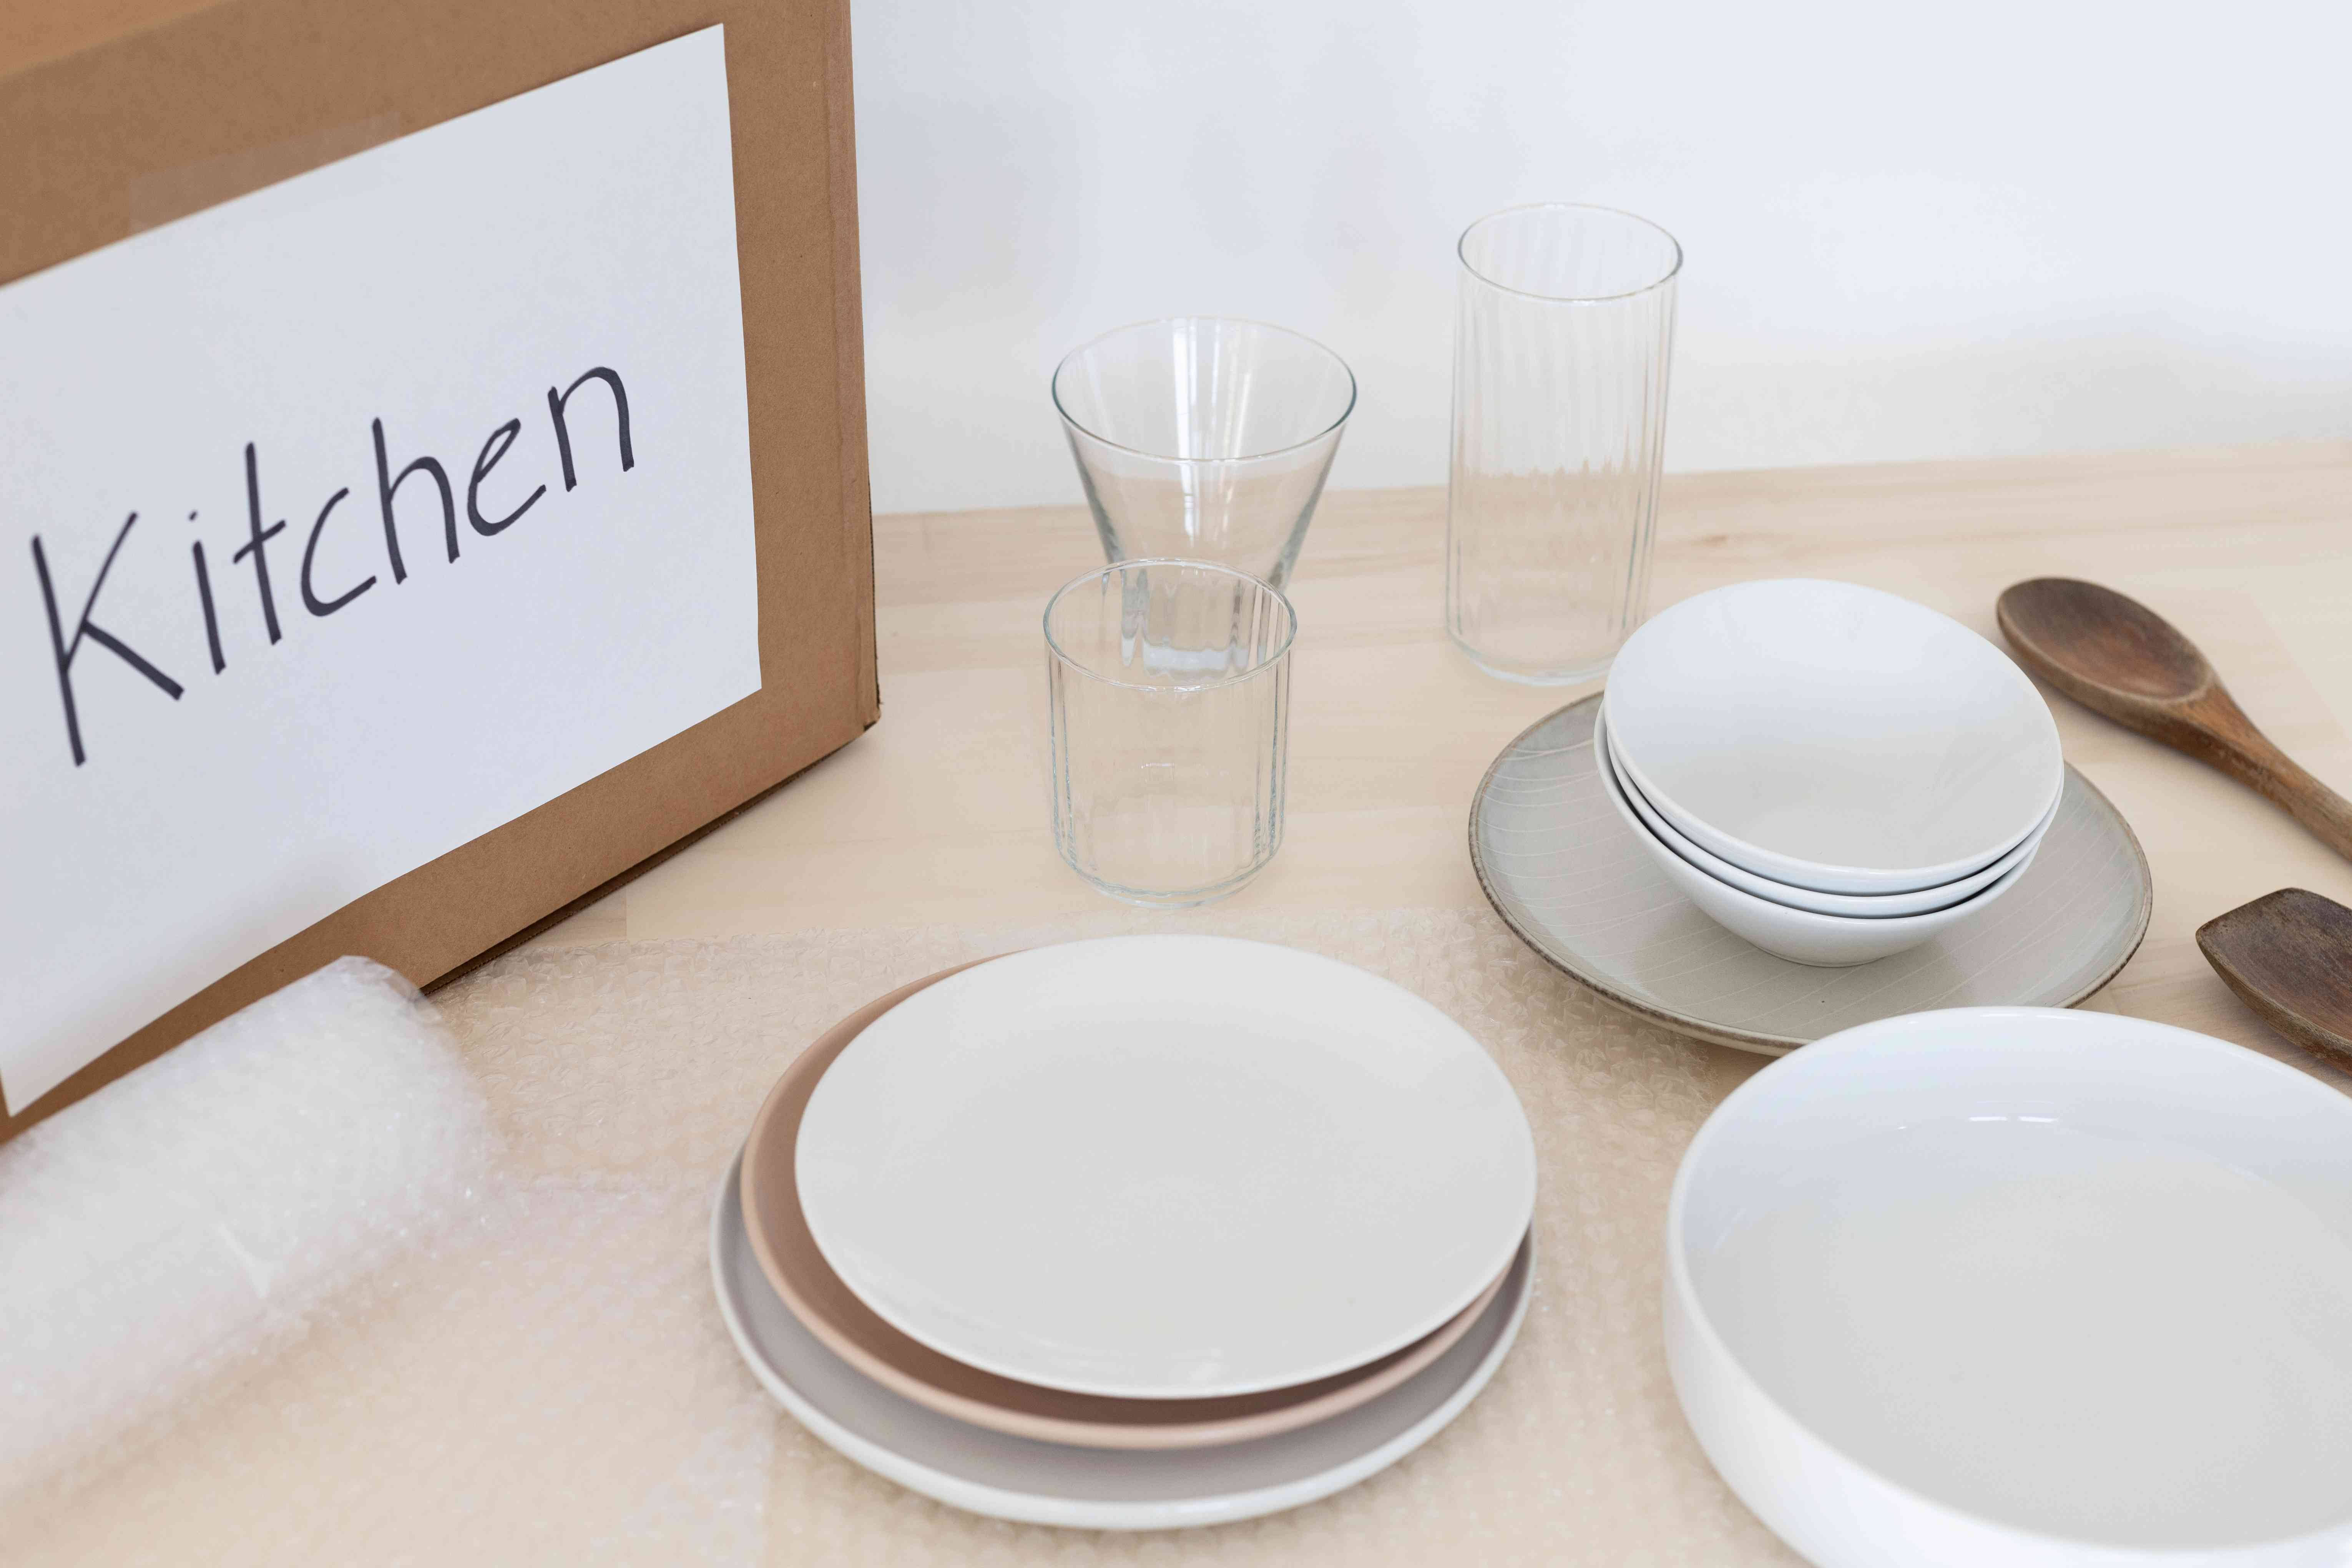 Bubble wrap under dining plates and glass cups next to labeled cardboard box marked kitchen